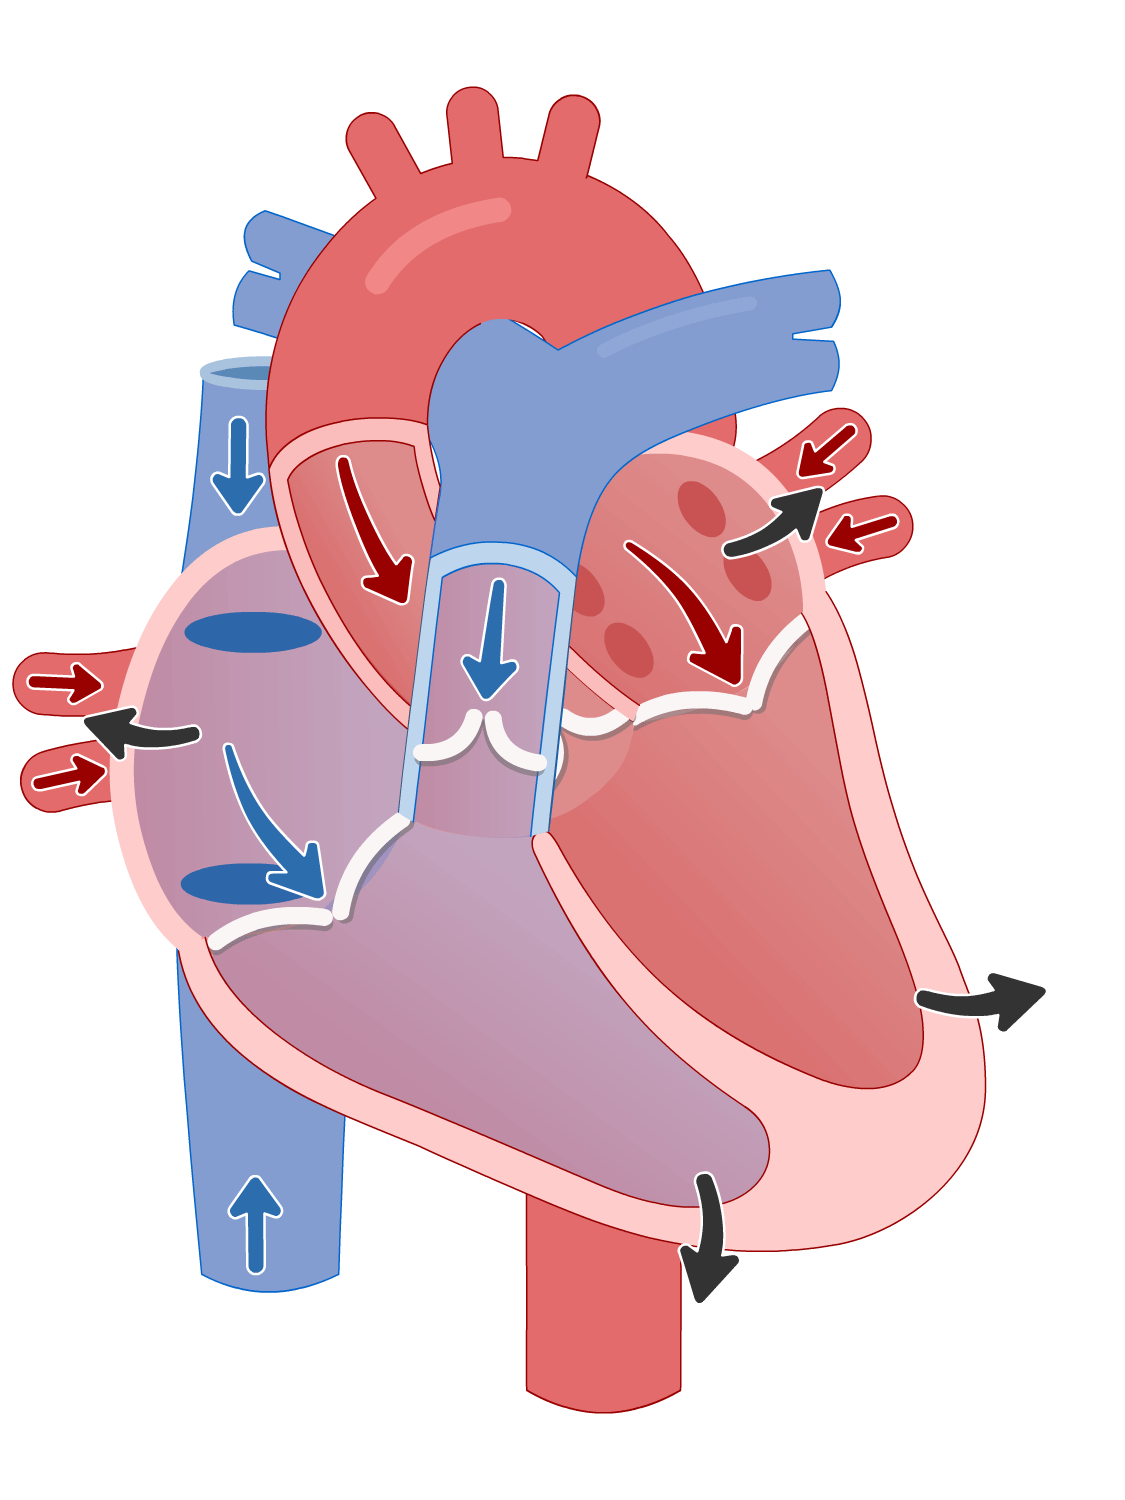 Cardiac cycle of the heart - ventricular iIsovolumetric (isovolumic) relaxation phase